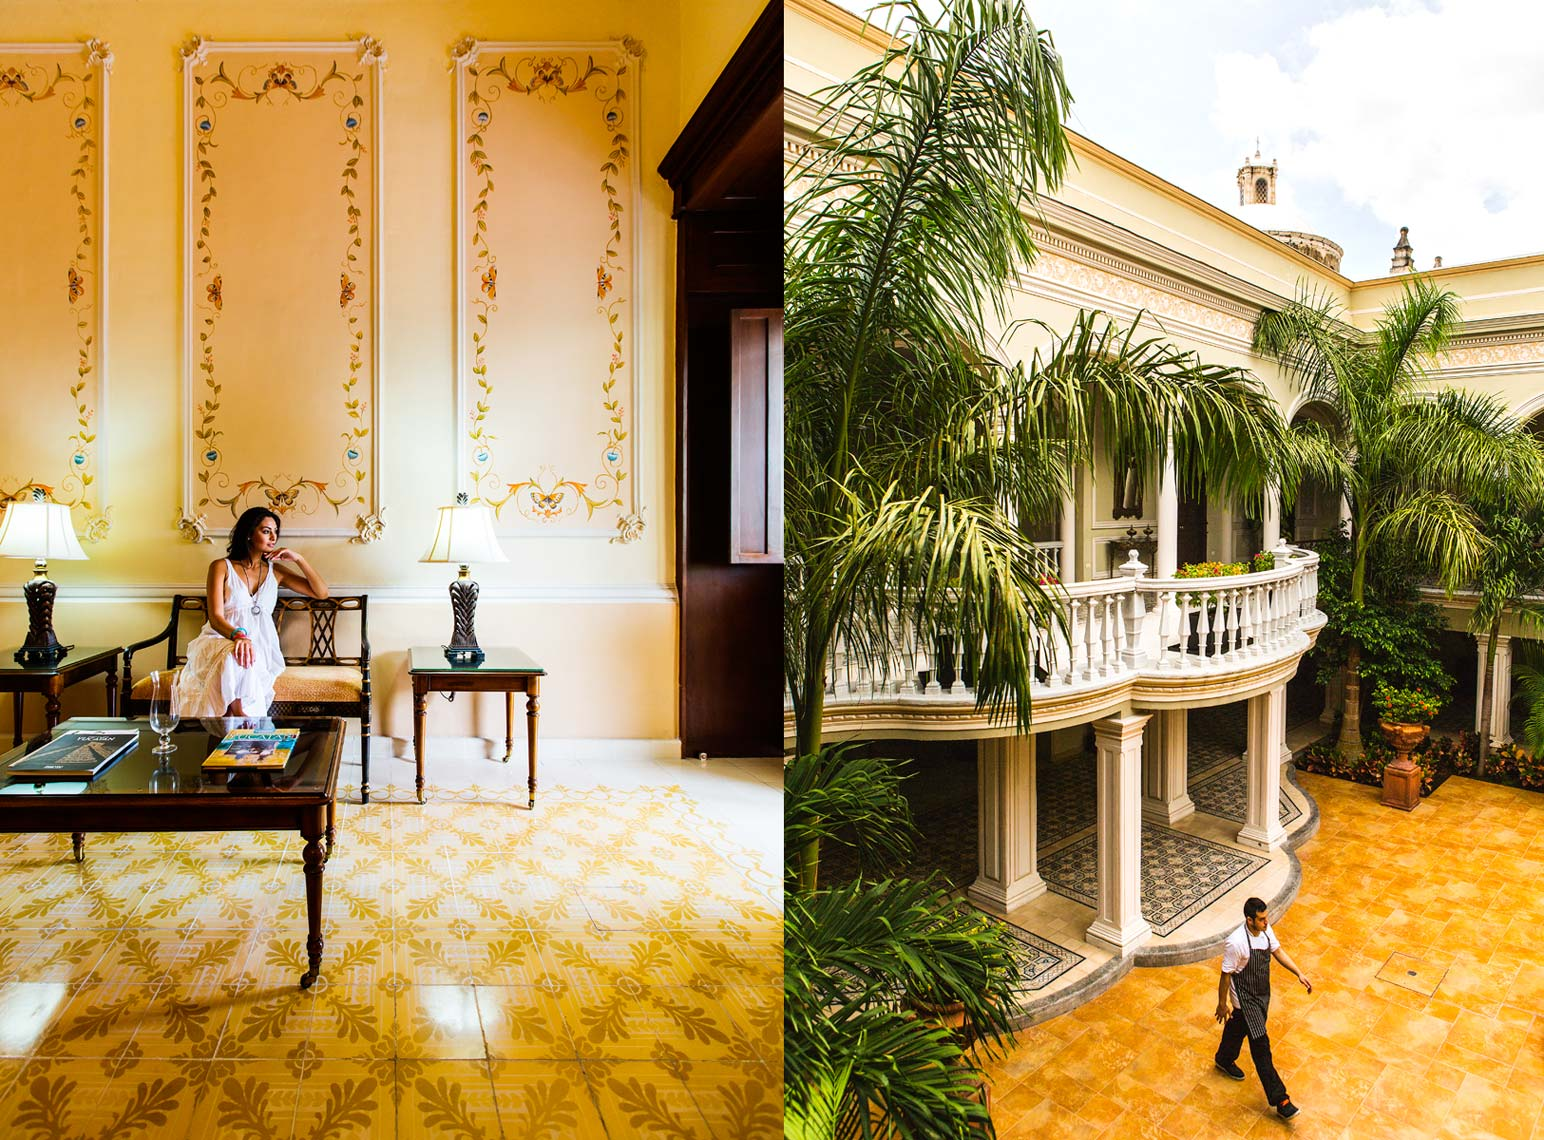 019-Chris-Hunt-Travel-Photography-Mexico-Yucatan-Mansion-Merida-0481